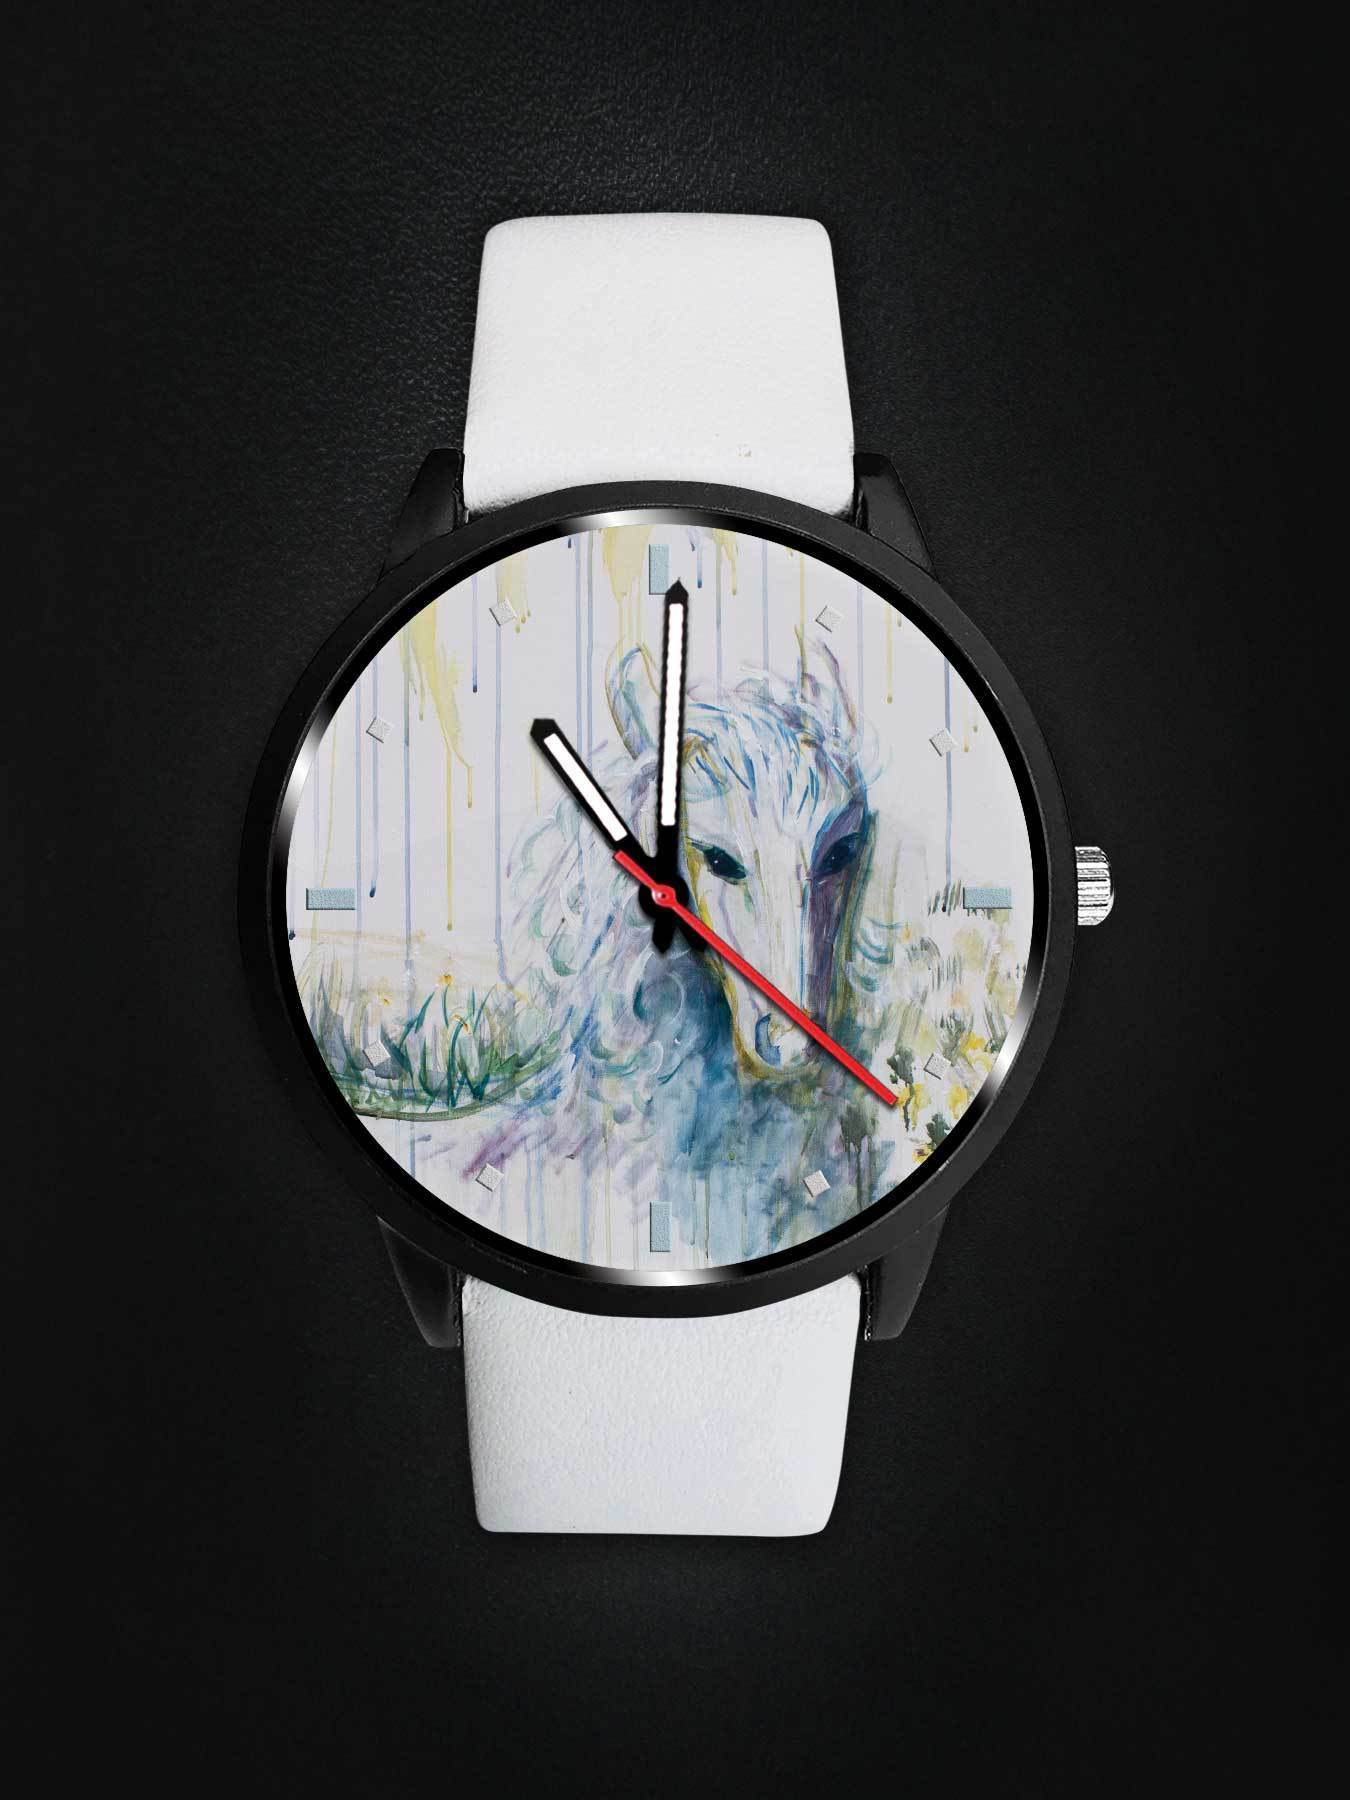 White Horse Abstract Watch Design by artist Avonelle Kelsey (1931-2009) - Get Set Style Metro